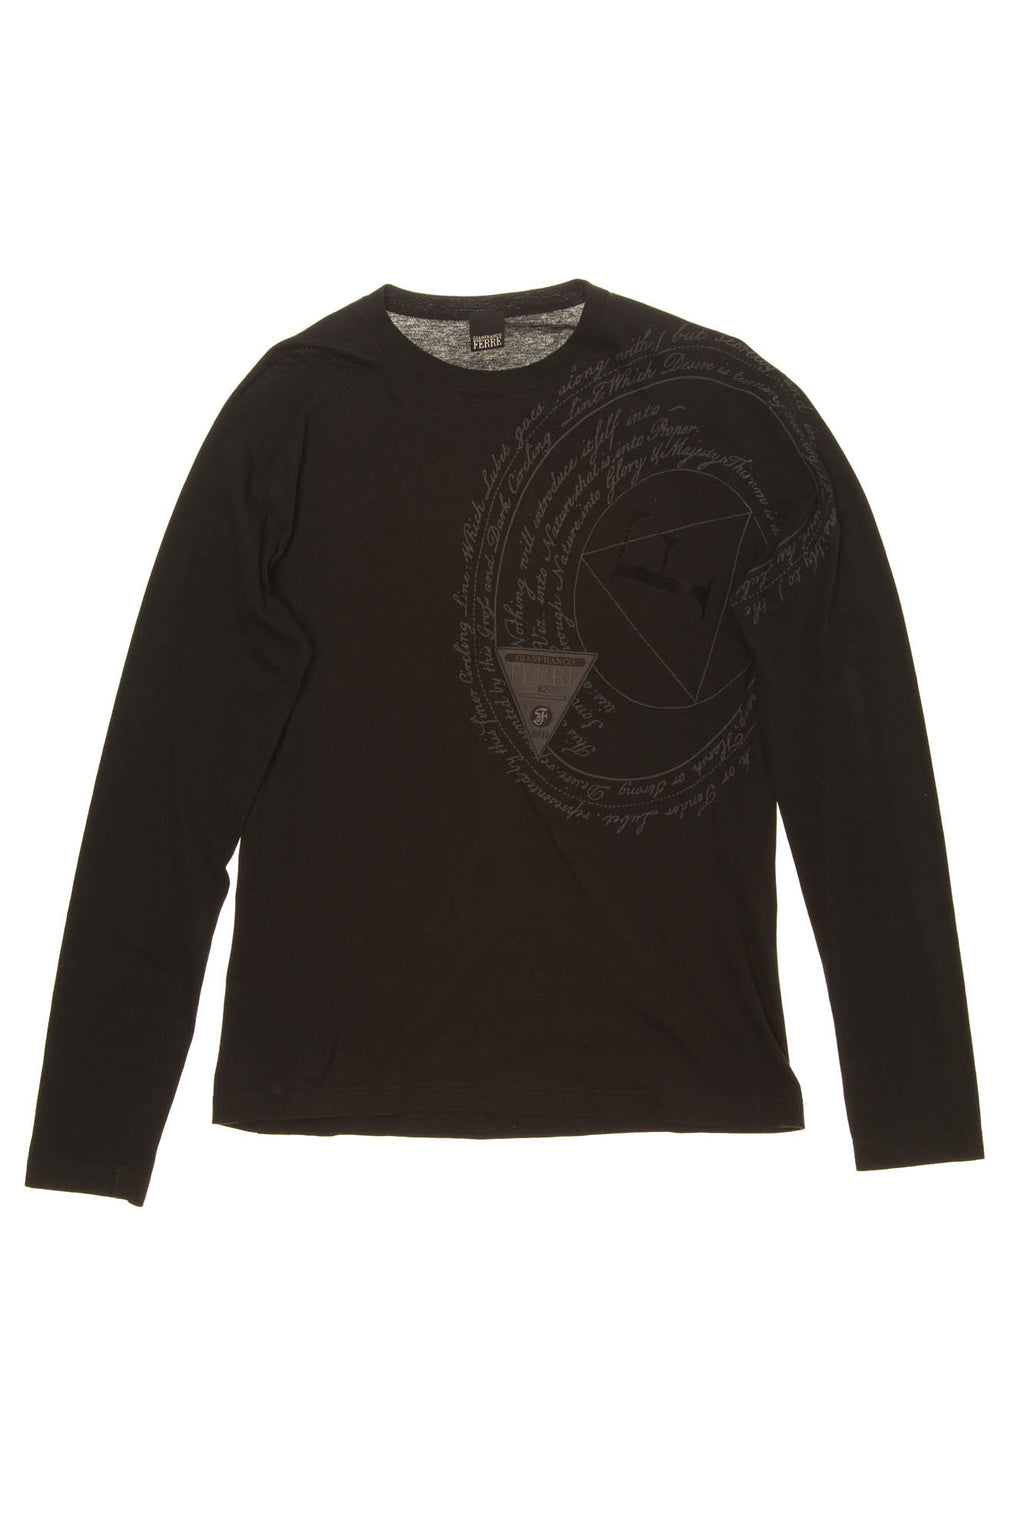 Gianfranco Ferre - Black Graphic Thermal Long Sleeve